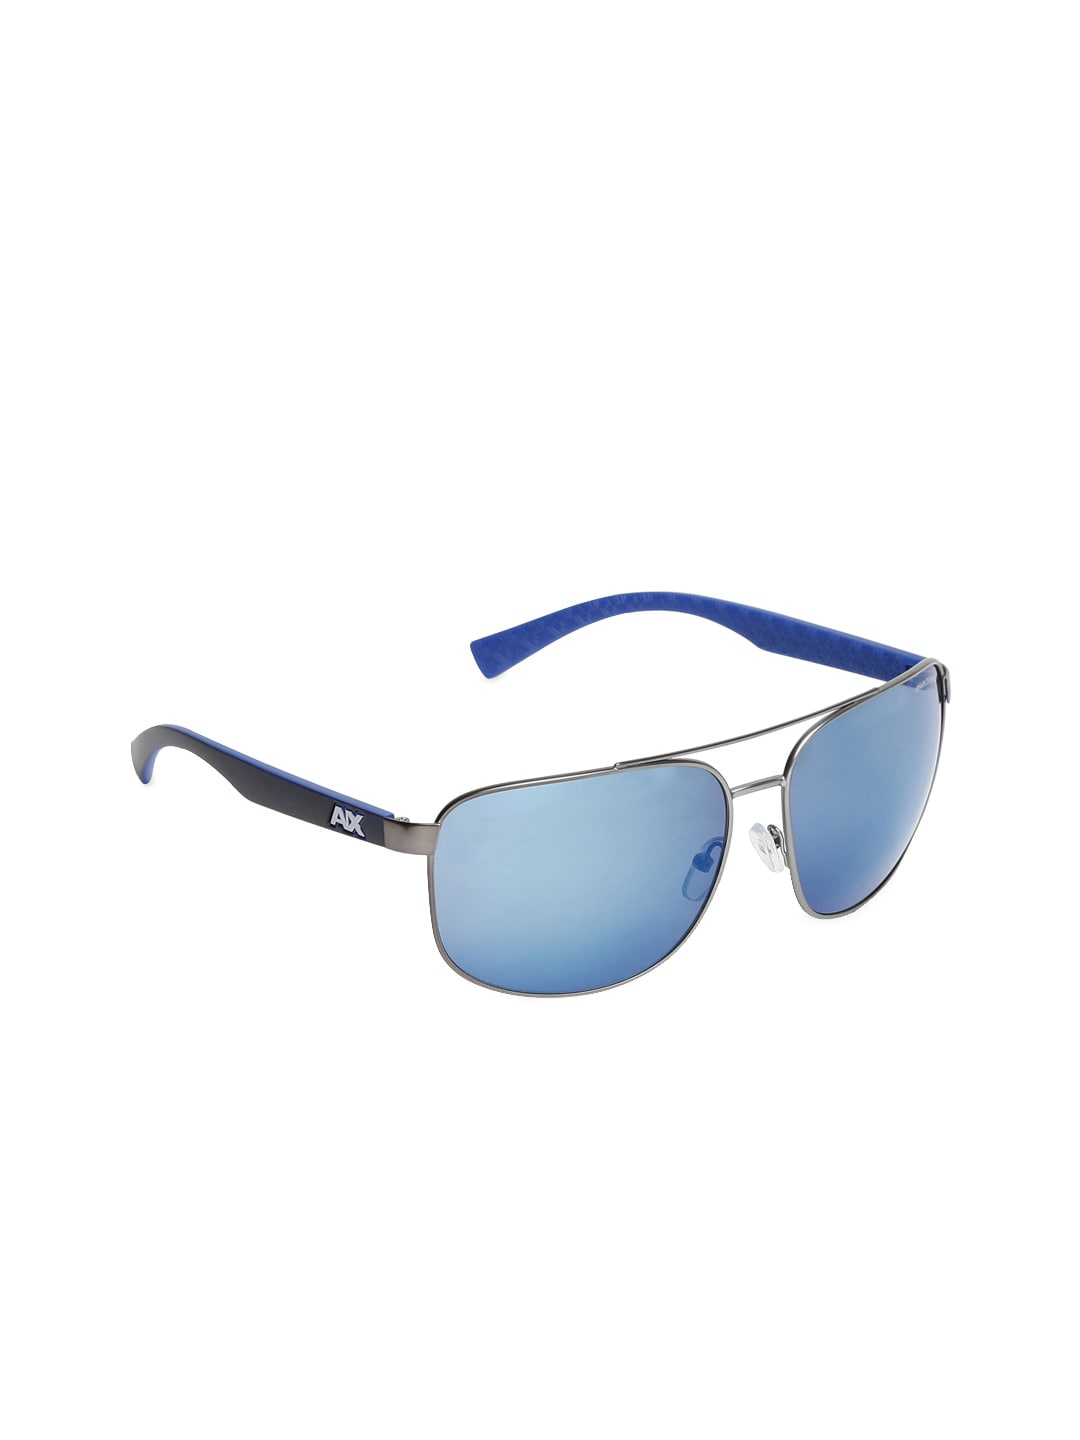 4e7a2139a32 Blue Sunglasses - Buy Blue Colour Sunglass Online in India